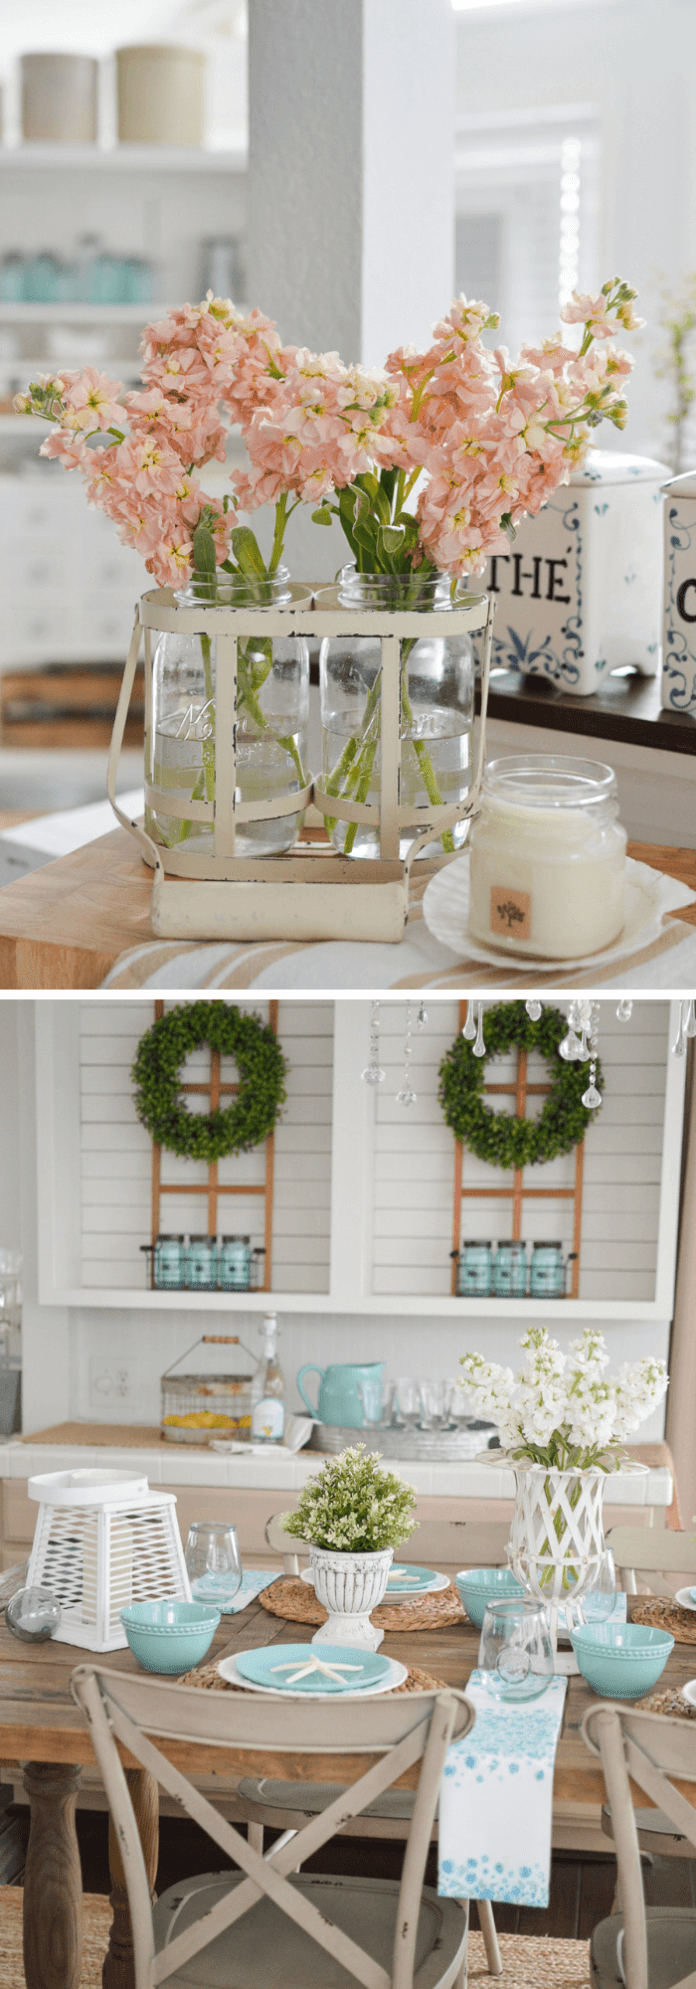 Summer Farmhouse Decor Ideas & Designs Summer farm table decorating